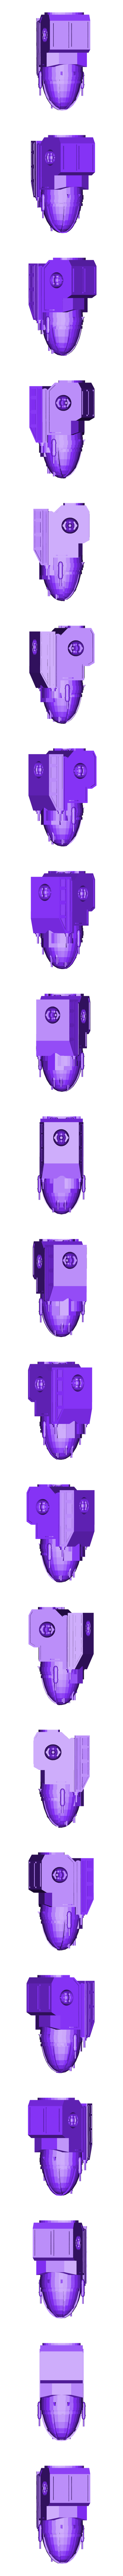 Cockpit_and_Rear_1_Piece.stl Download free STL file Ball Joint Mad Cat Mech • 3D printable object, mrhers2